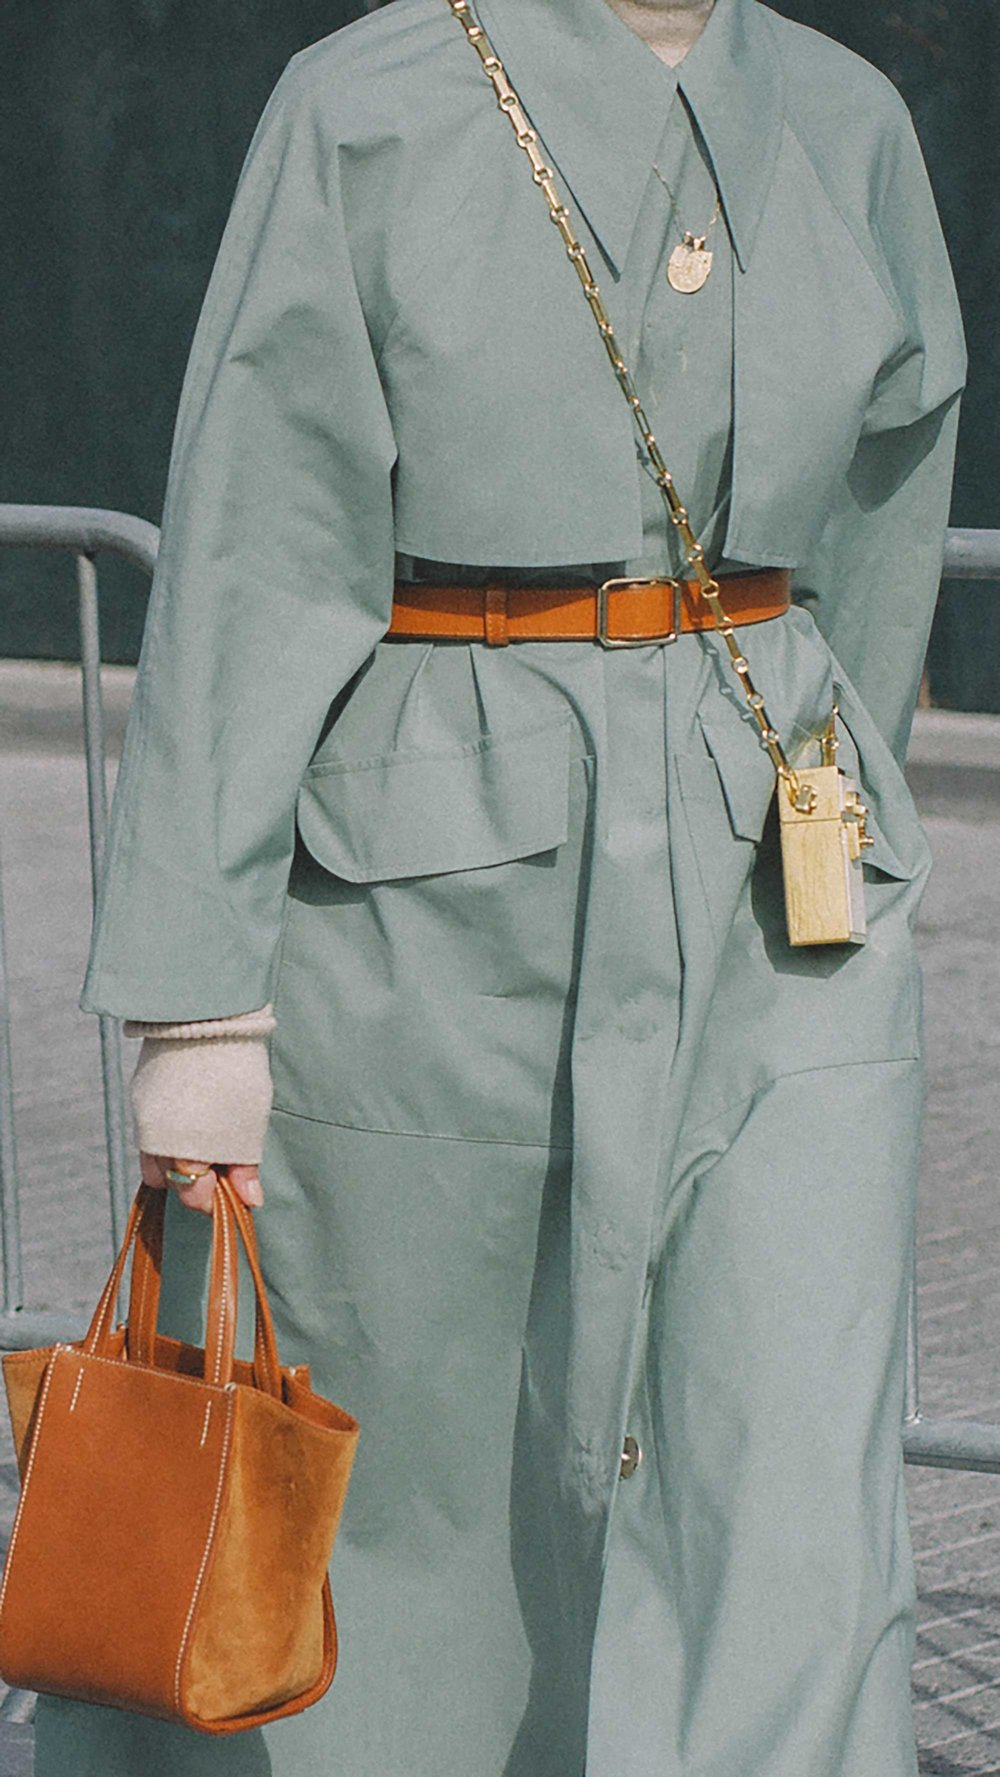 20 irresistible pastel outfit ideas for winter from New York Fashion Week street style7.jpg